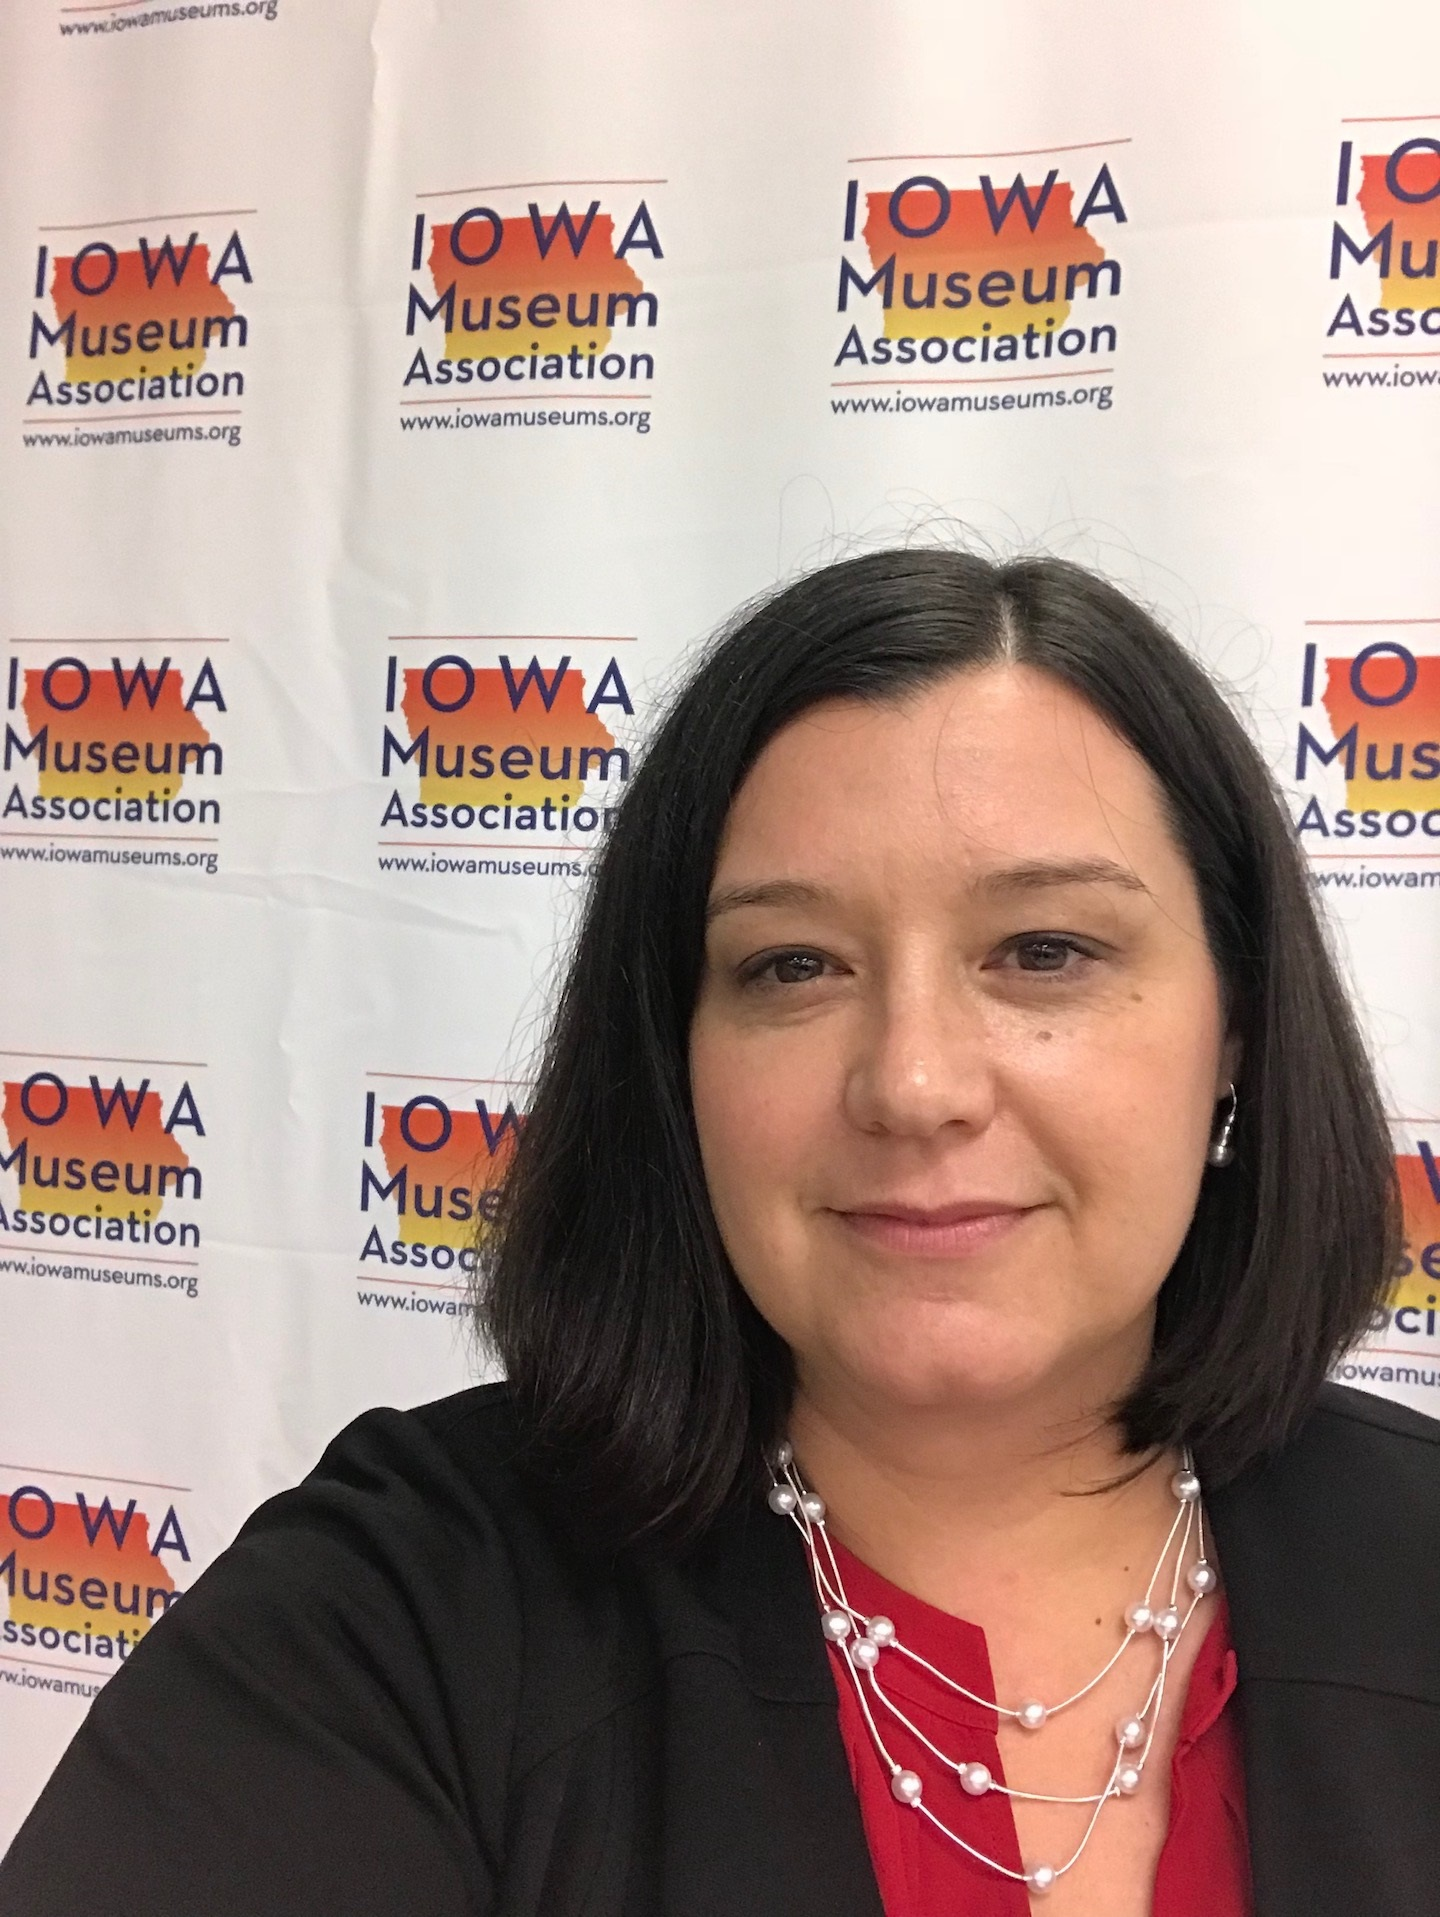 Image of a white woman standing in front of an Iowa Museums Association step and repeat. She has shoulder length brown hair combed to the left side wearing a dark colored jacket and red shirt.